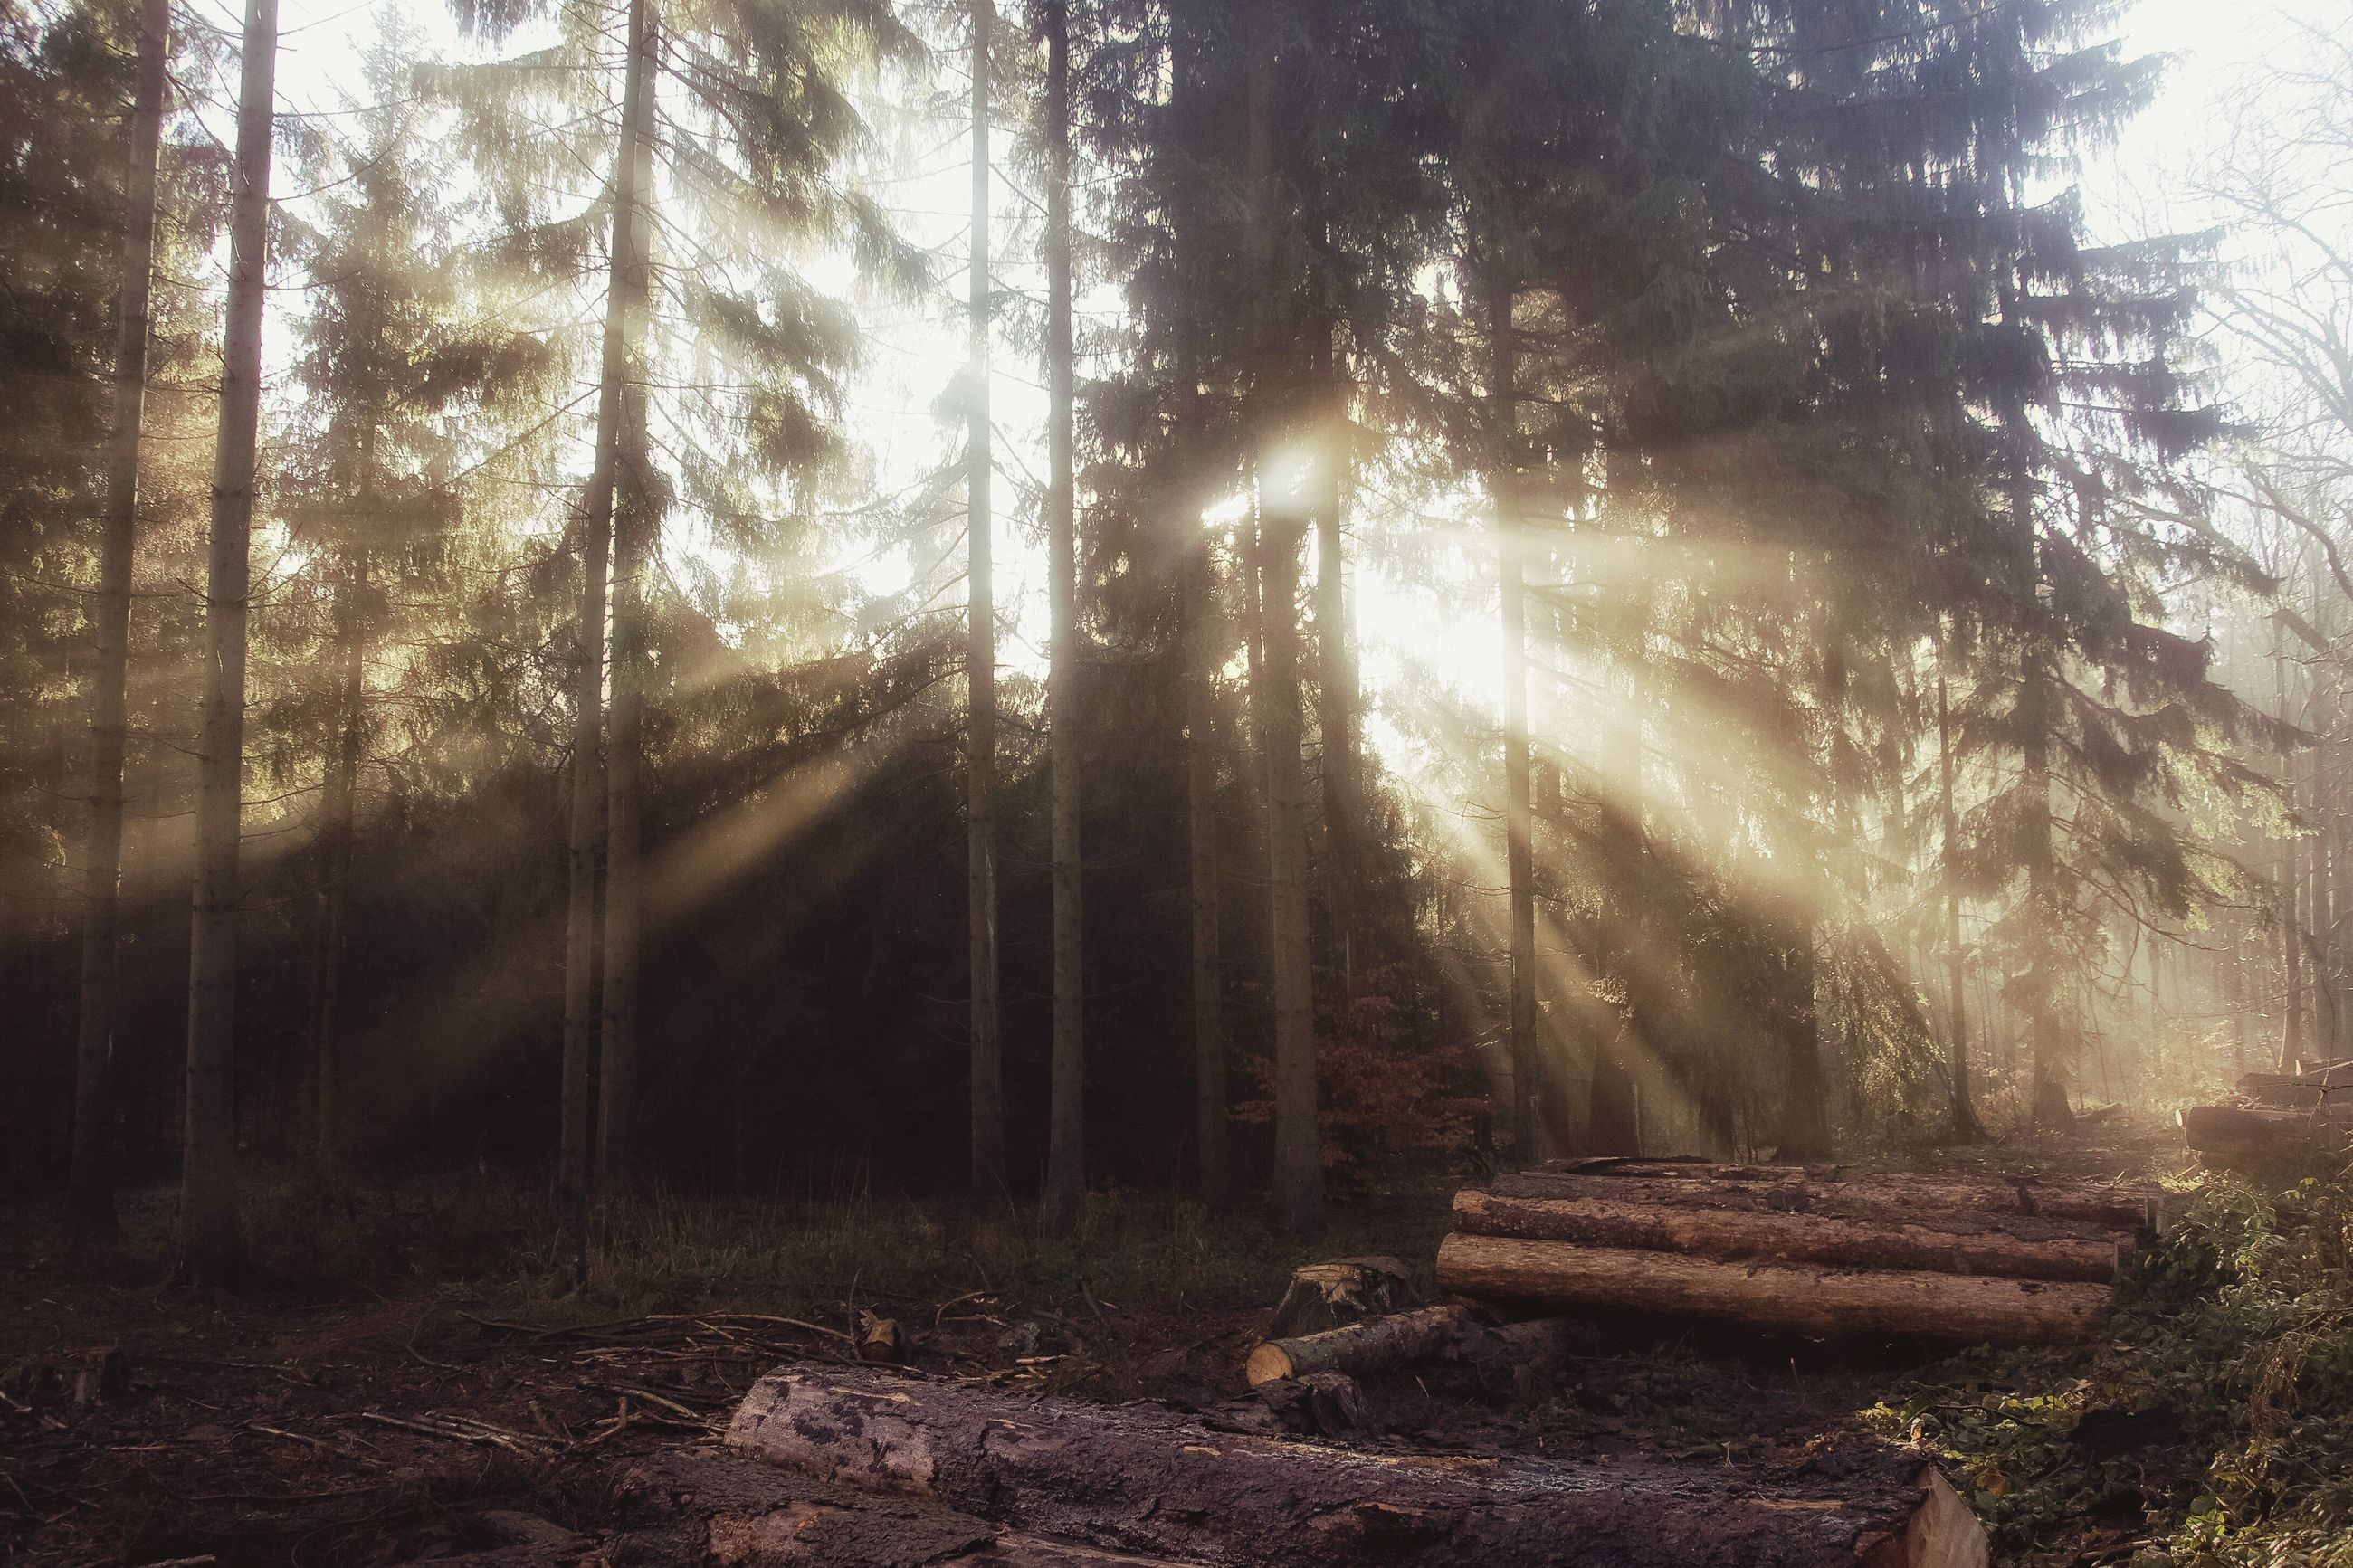 tree, forest, tranquility, tree trunk, sunbeam, tranquil scene, woodland, sunlight, nature, growth, sun, scenics, beauty in nature, lens flare, non-urban scene, wood - material, landscape, outdoors, field, day